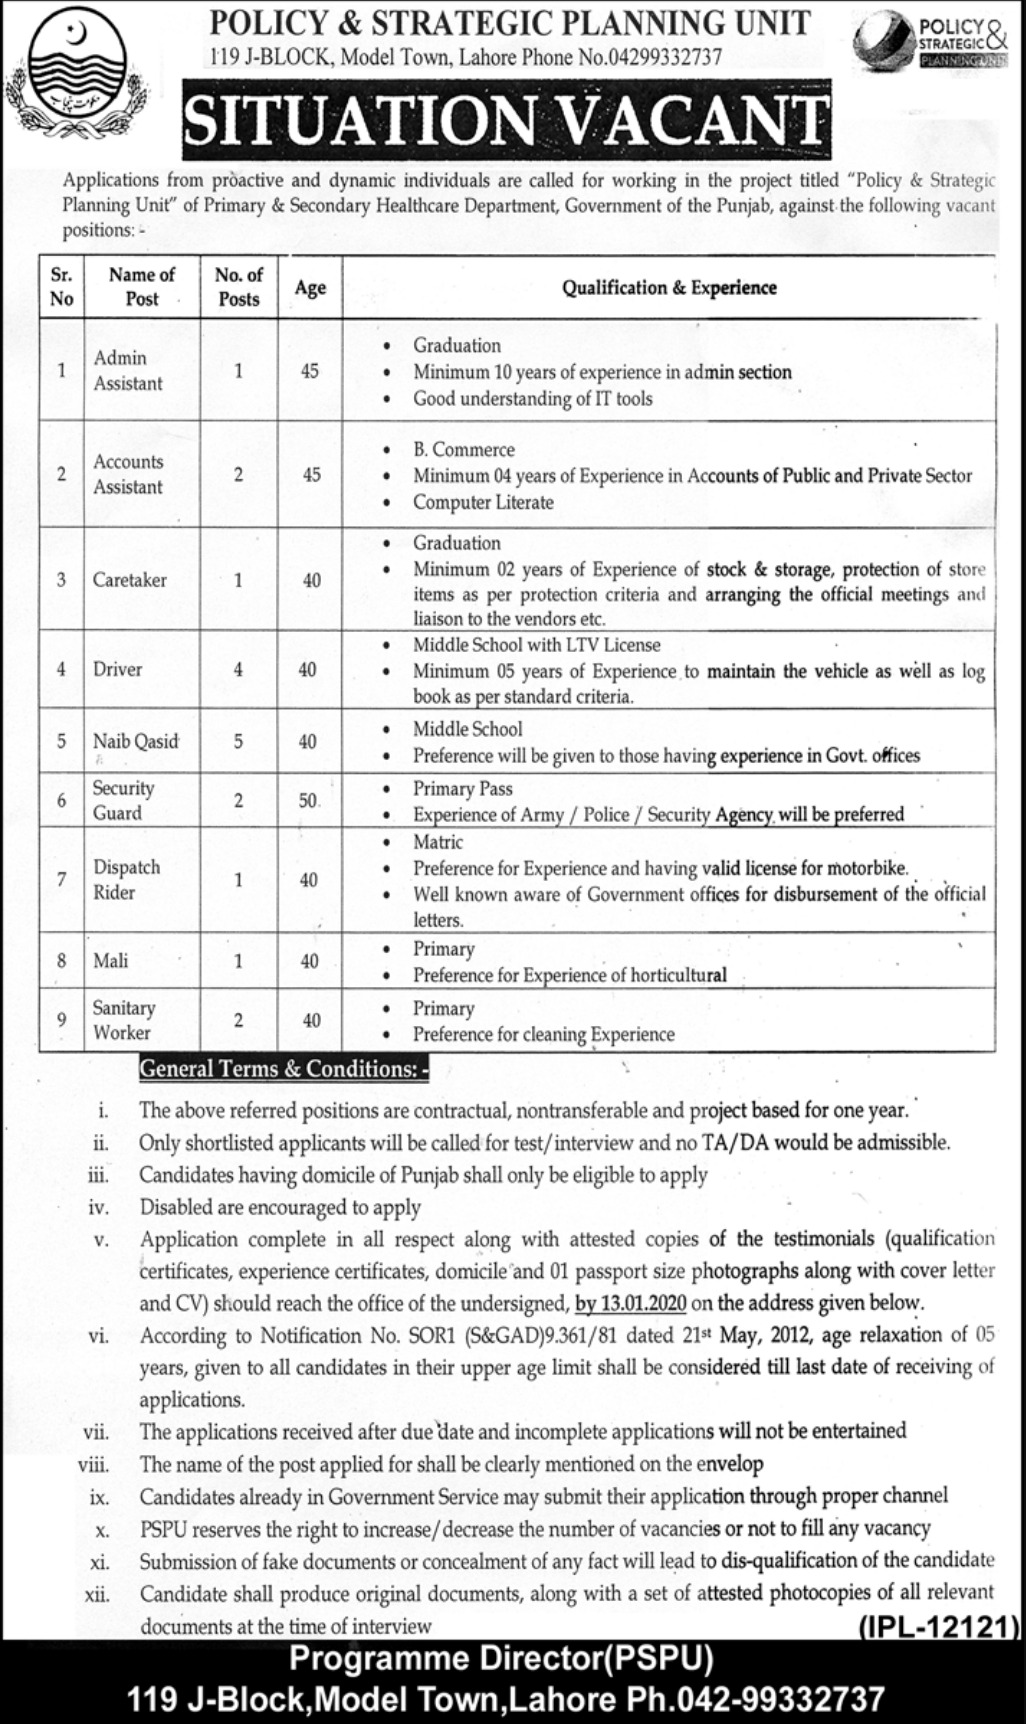 Policy & Strategic Planning Unit Government of Punjab Jobs 2020